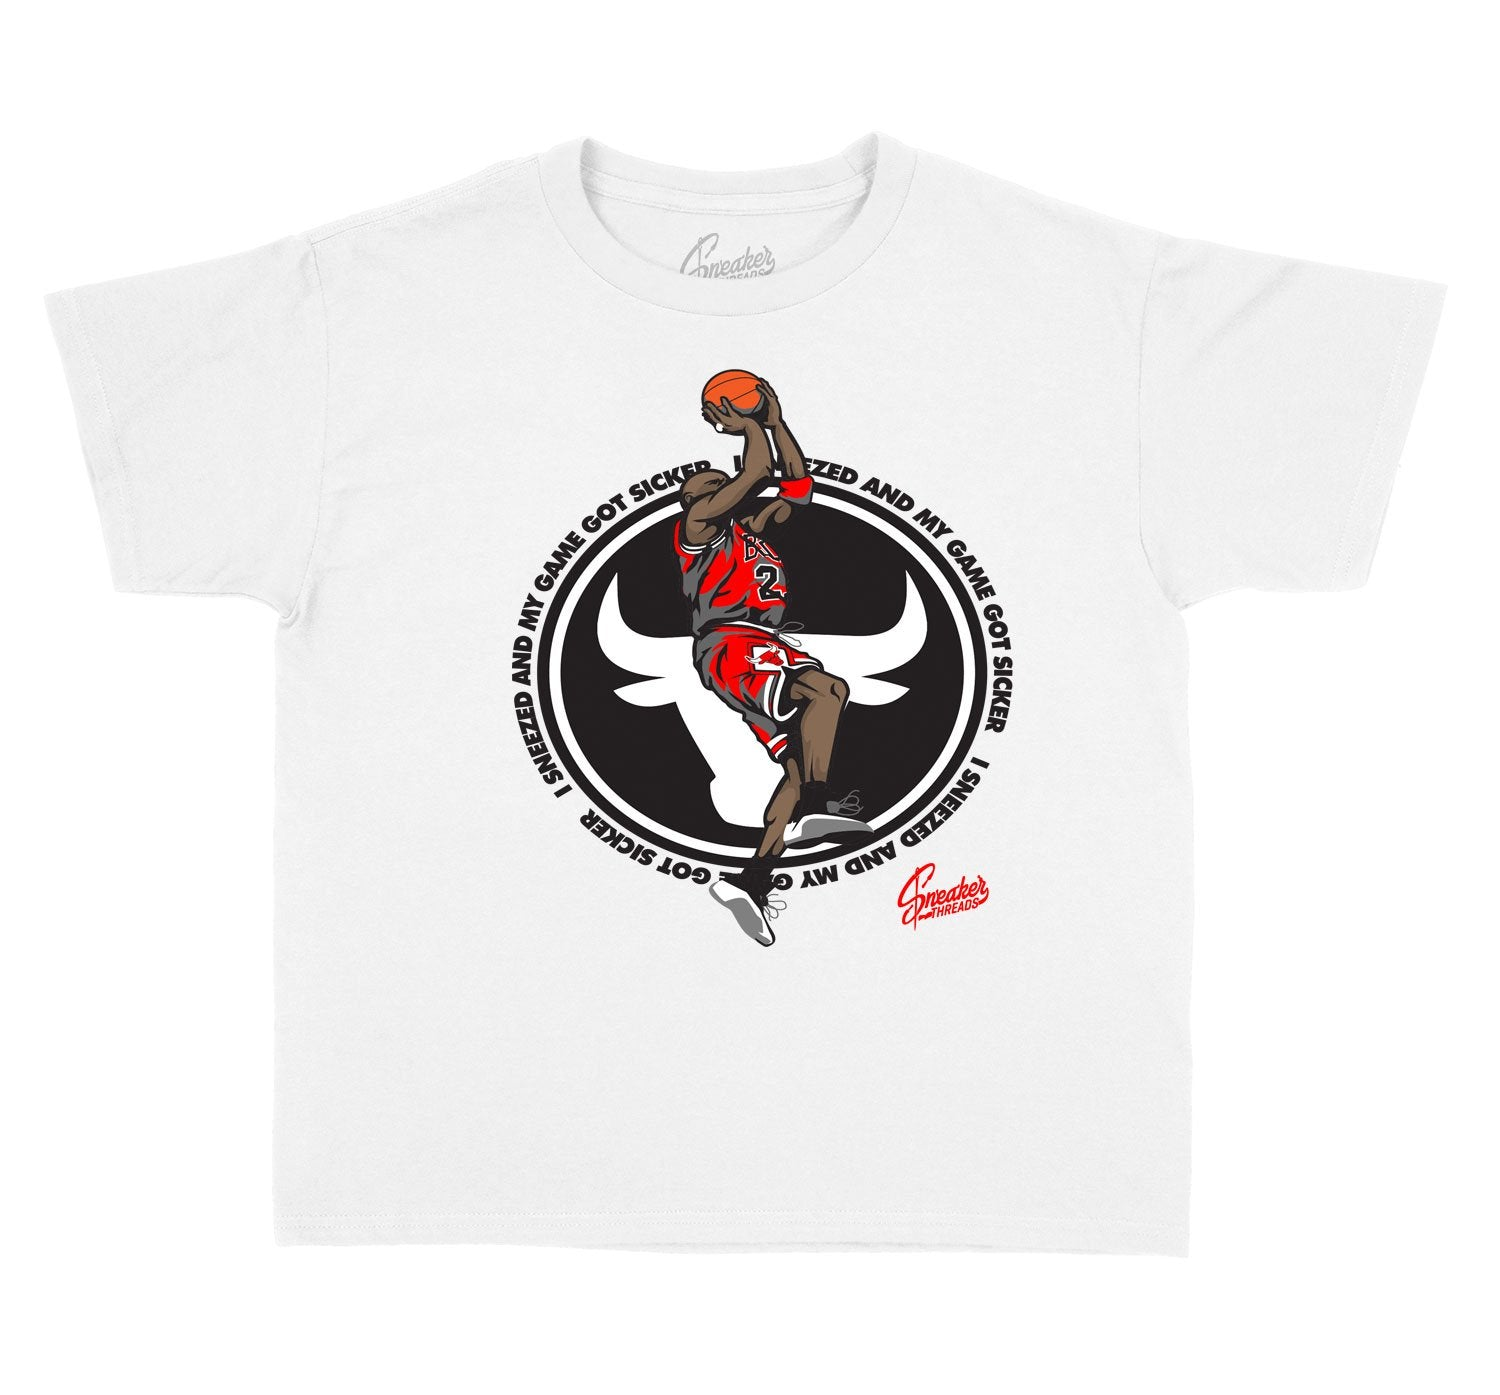 Kids jordan 12 dark grey sneaker tees match retro 12s shoes.